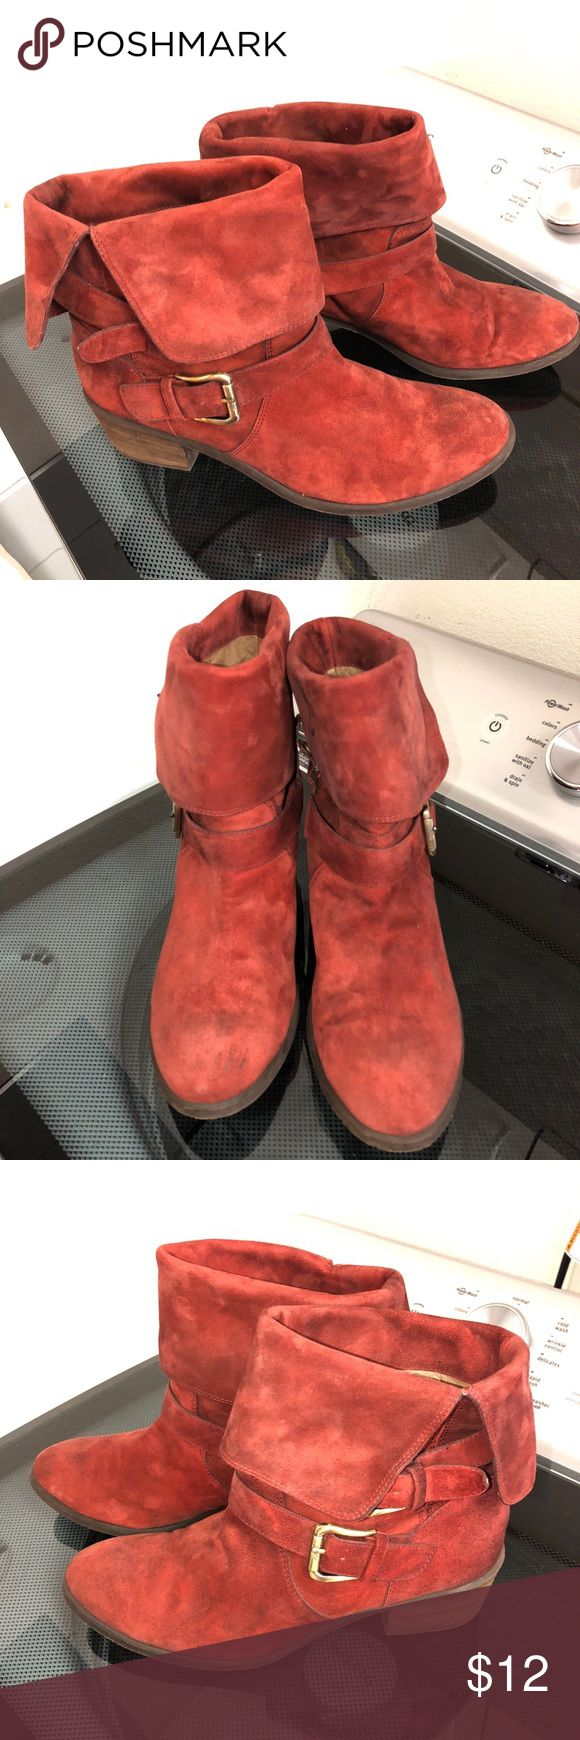 Donald J Pliner suede boots SZ 9.5 Danee-bv These boots have seen their better days, so selling cheap! No flaws, just need some spot cleaning. The pics make them look RED but they are more burgundy like the last pic. They are called Danee-bv Donald J. Pliner Shoes Ankle Boots & Booties